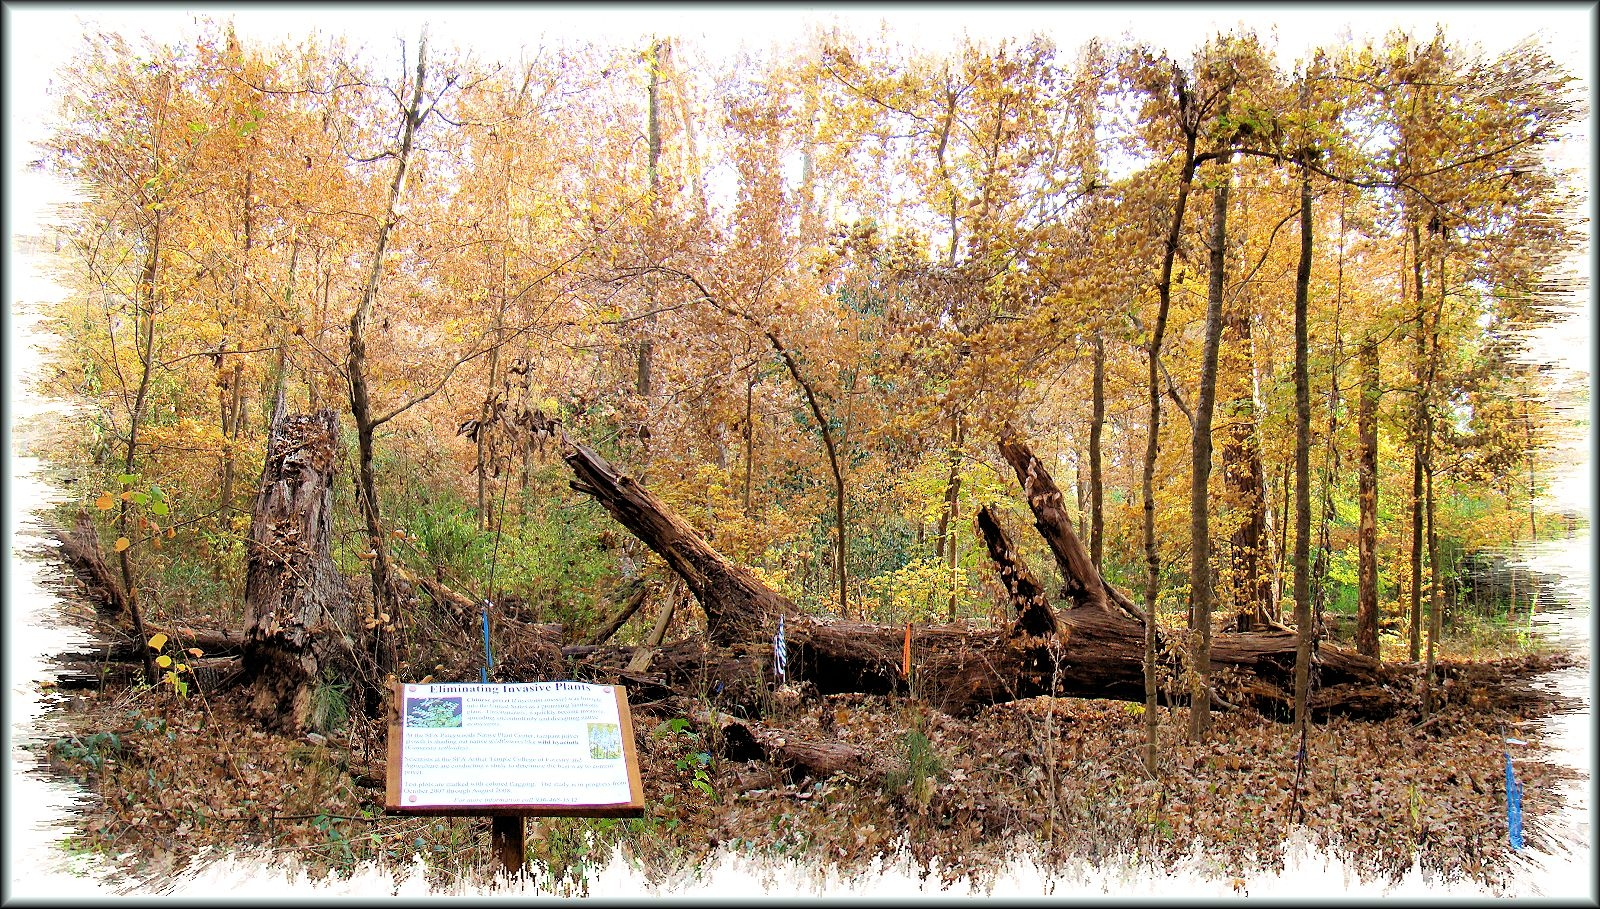 The Fallen Tree at the Pineywoods Native Plant Center